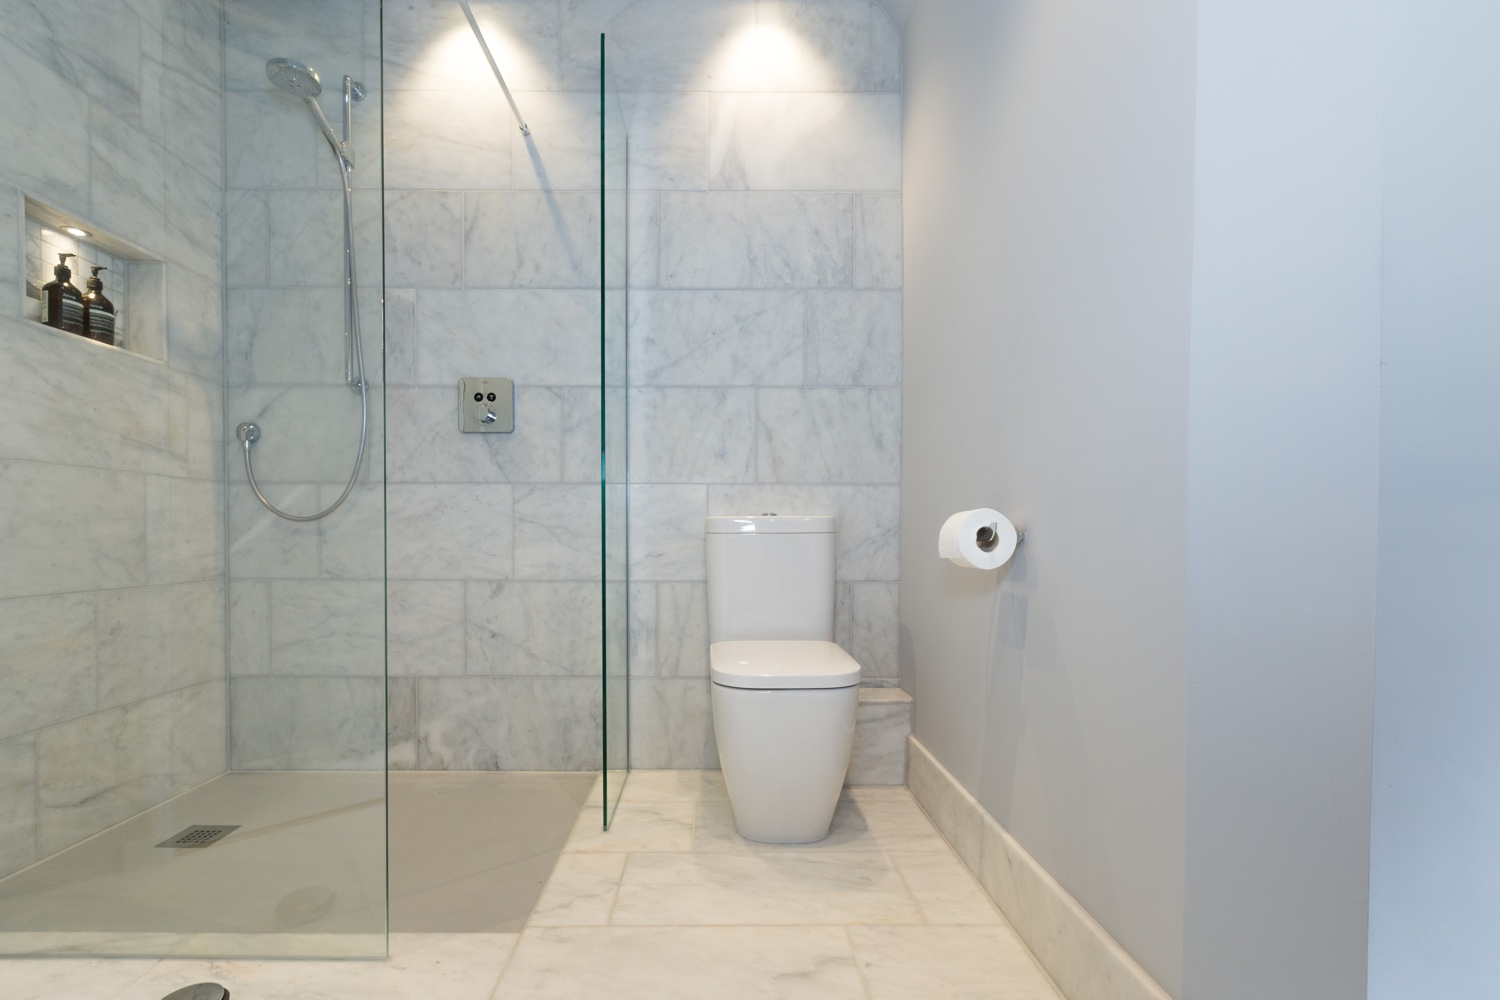 Bathroom Design Kingston kingston bathroom design & installation | jeremy colson bathrooms